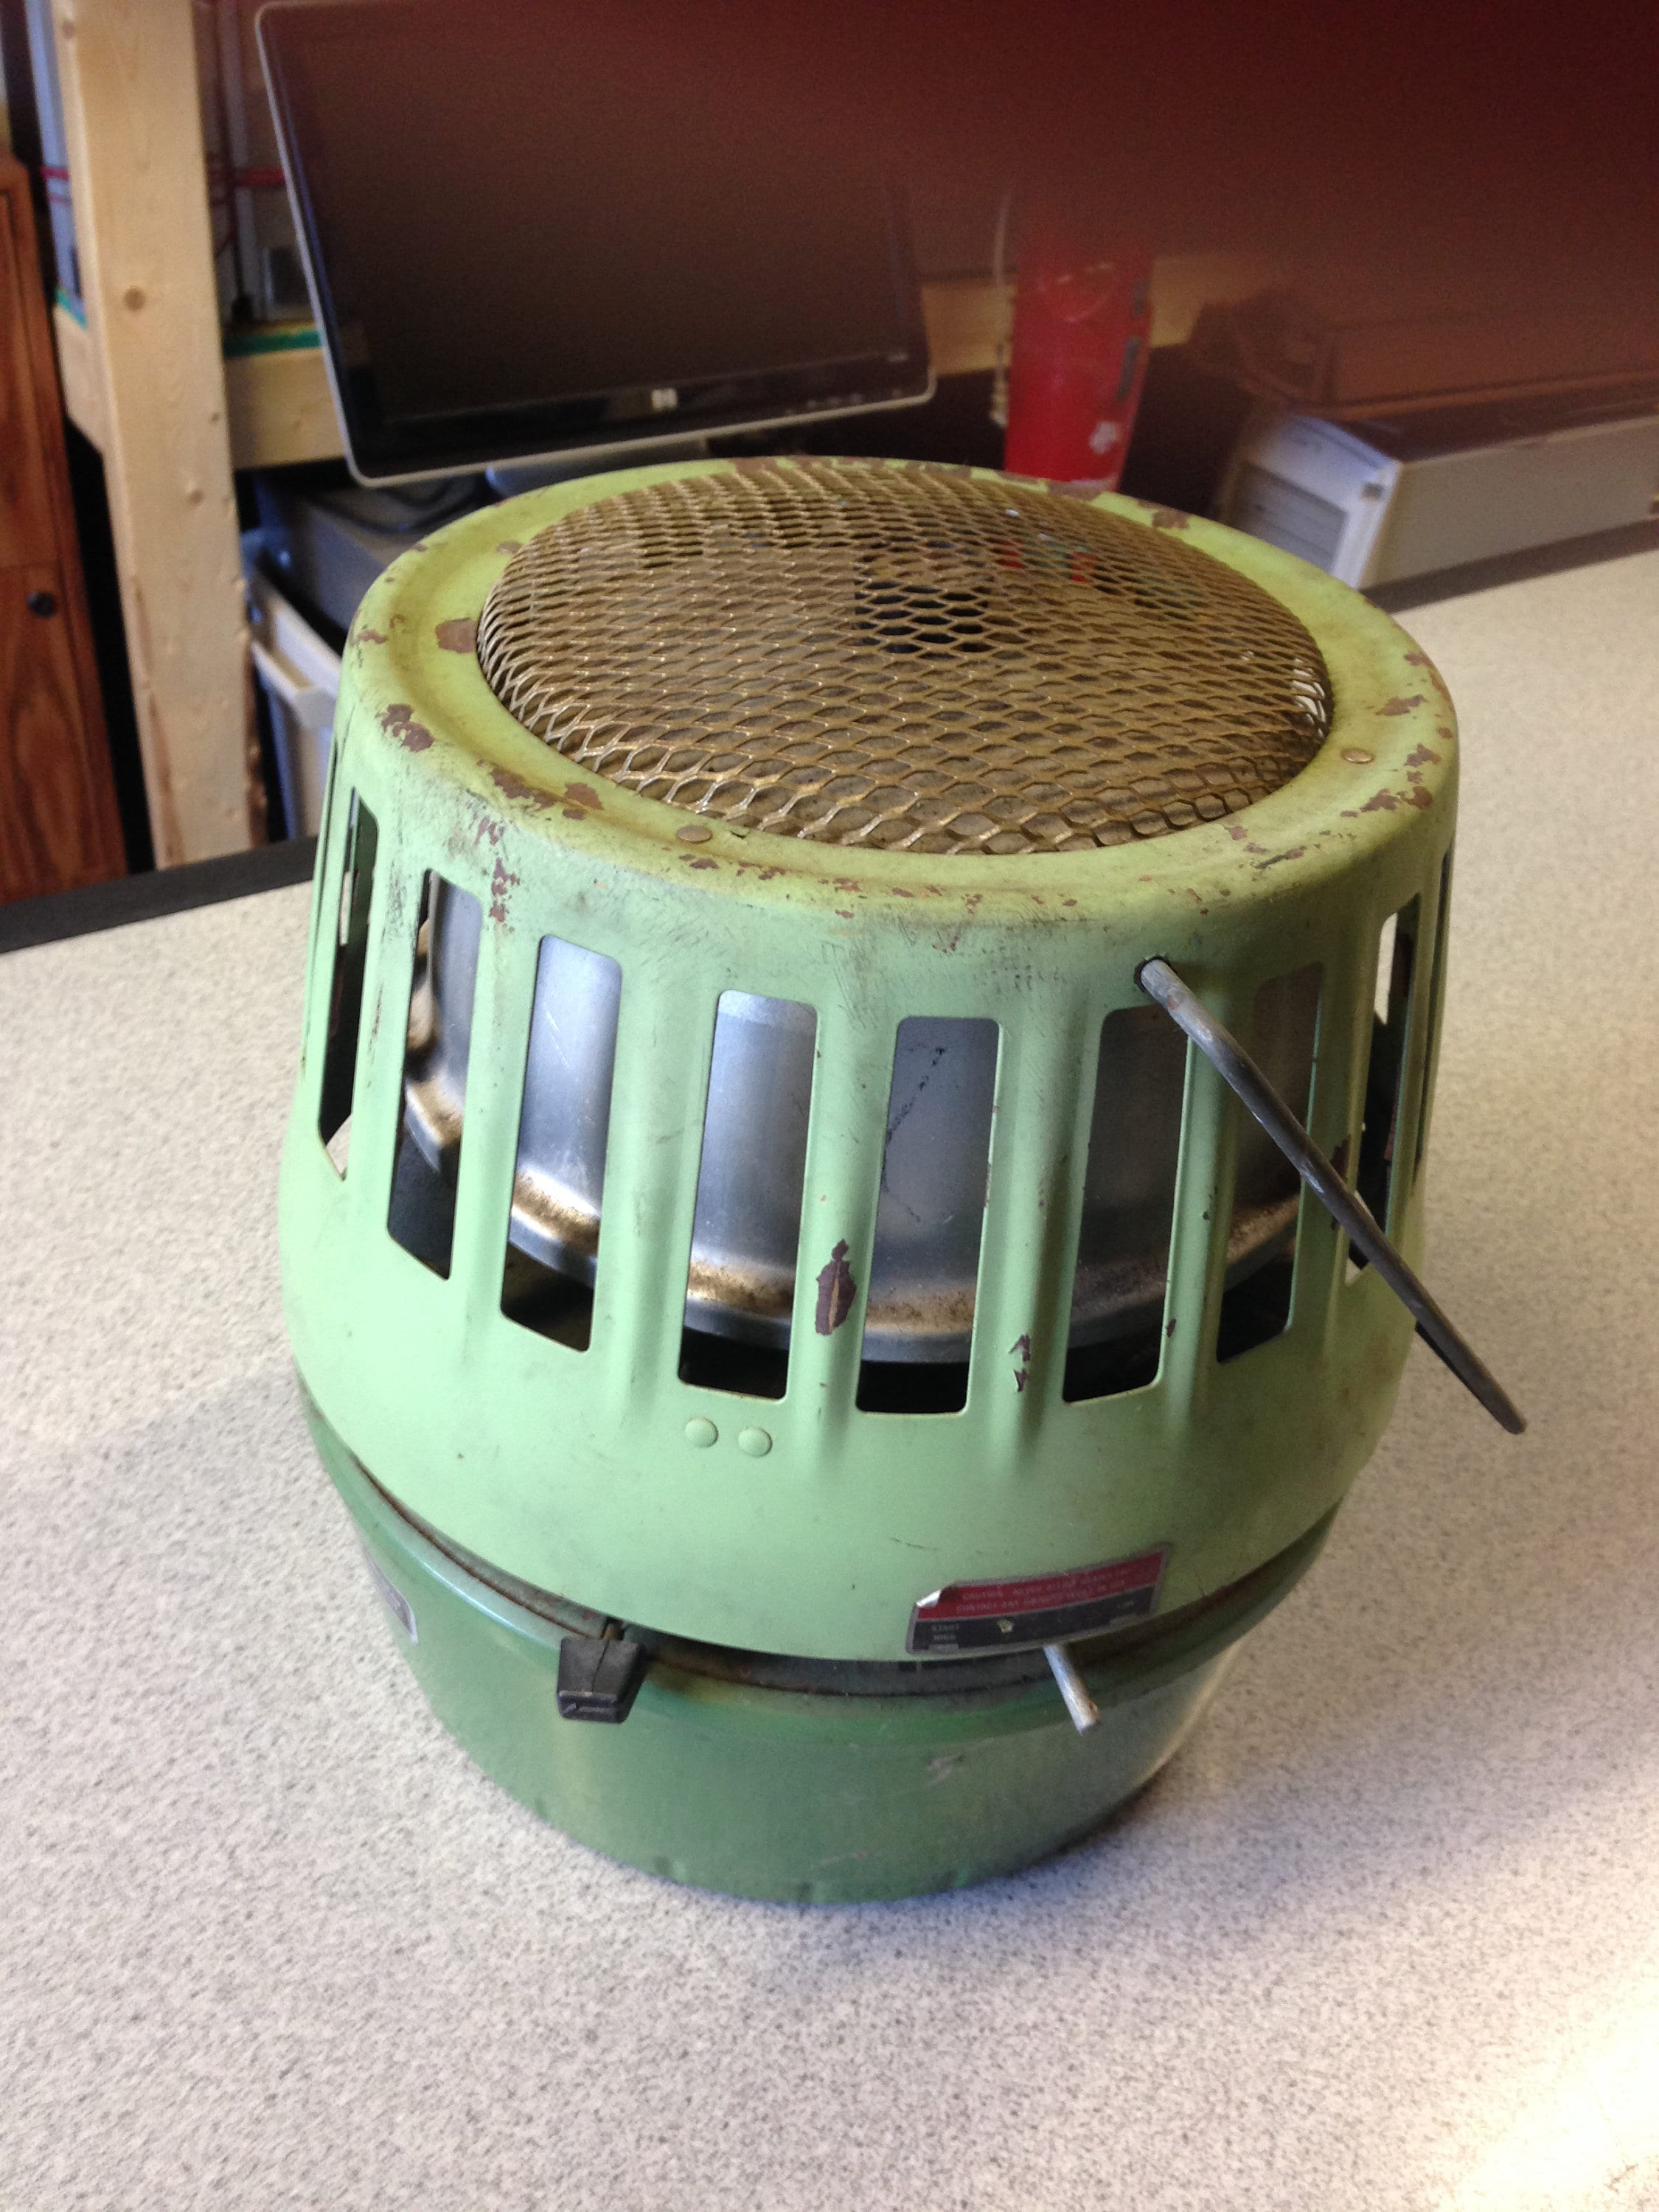 SEARS Adjustable Propane Flameless Catalytic Heater New In